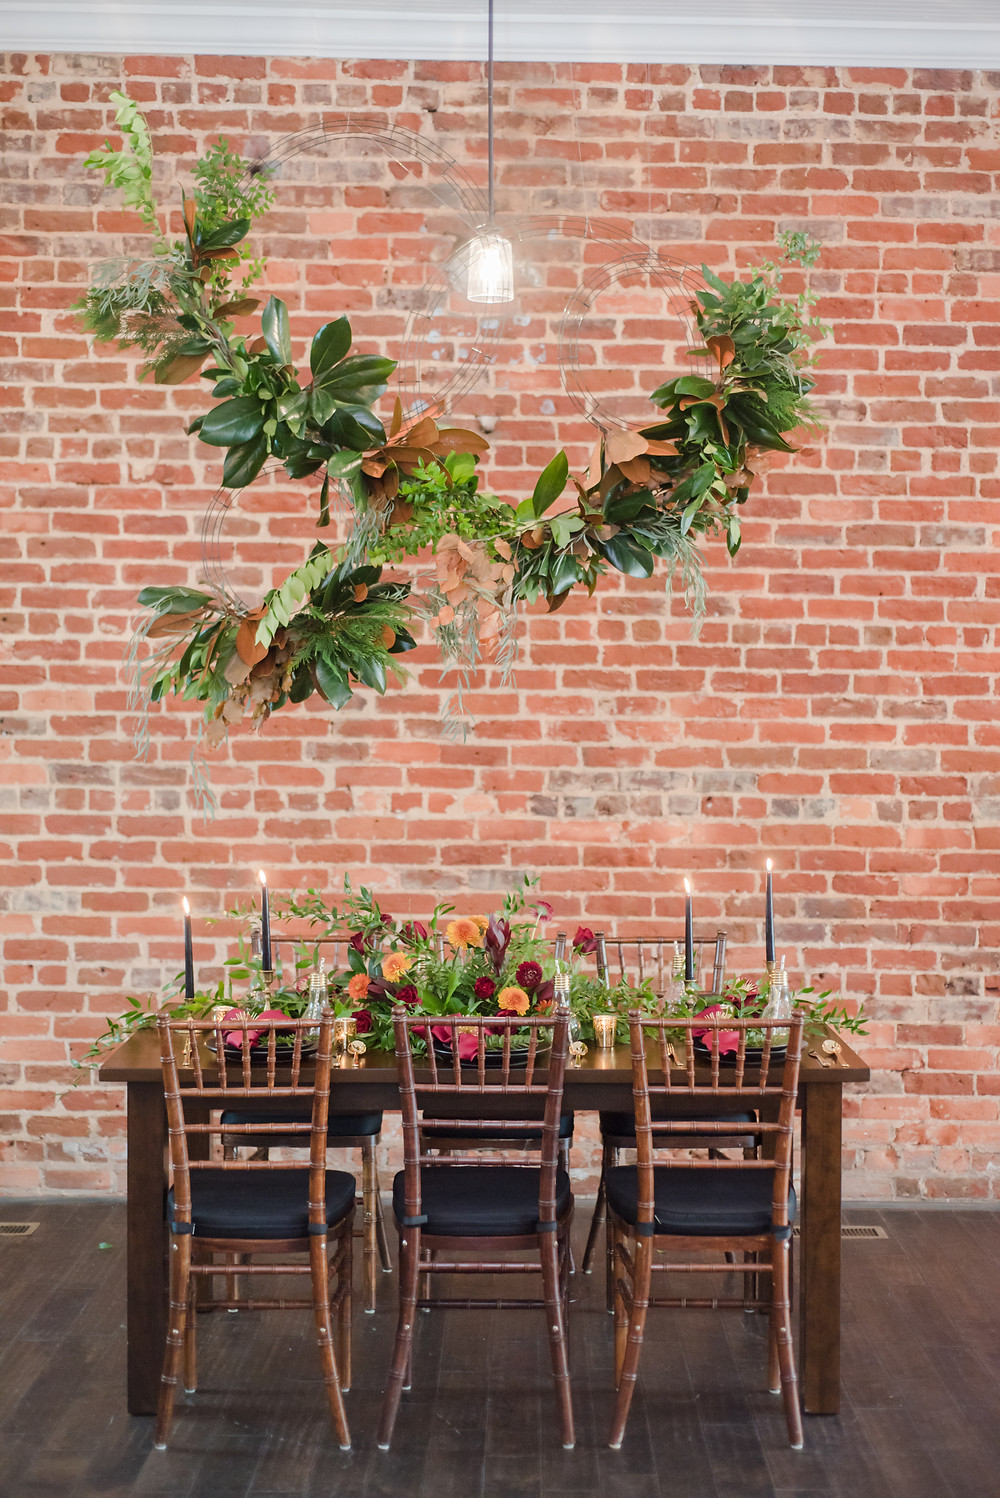 wedding venue, elopement venue, rustic wedding venue, intimate wedding venue, intimate venue, fall rehearsal dinner, Atlanta wedding venue